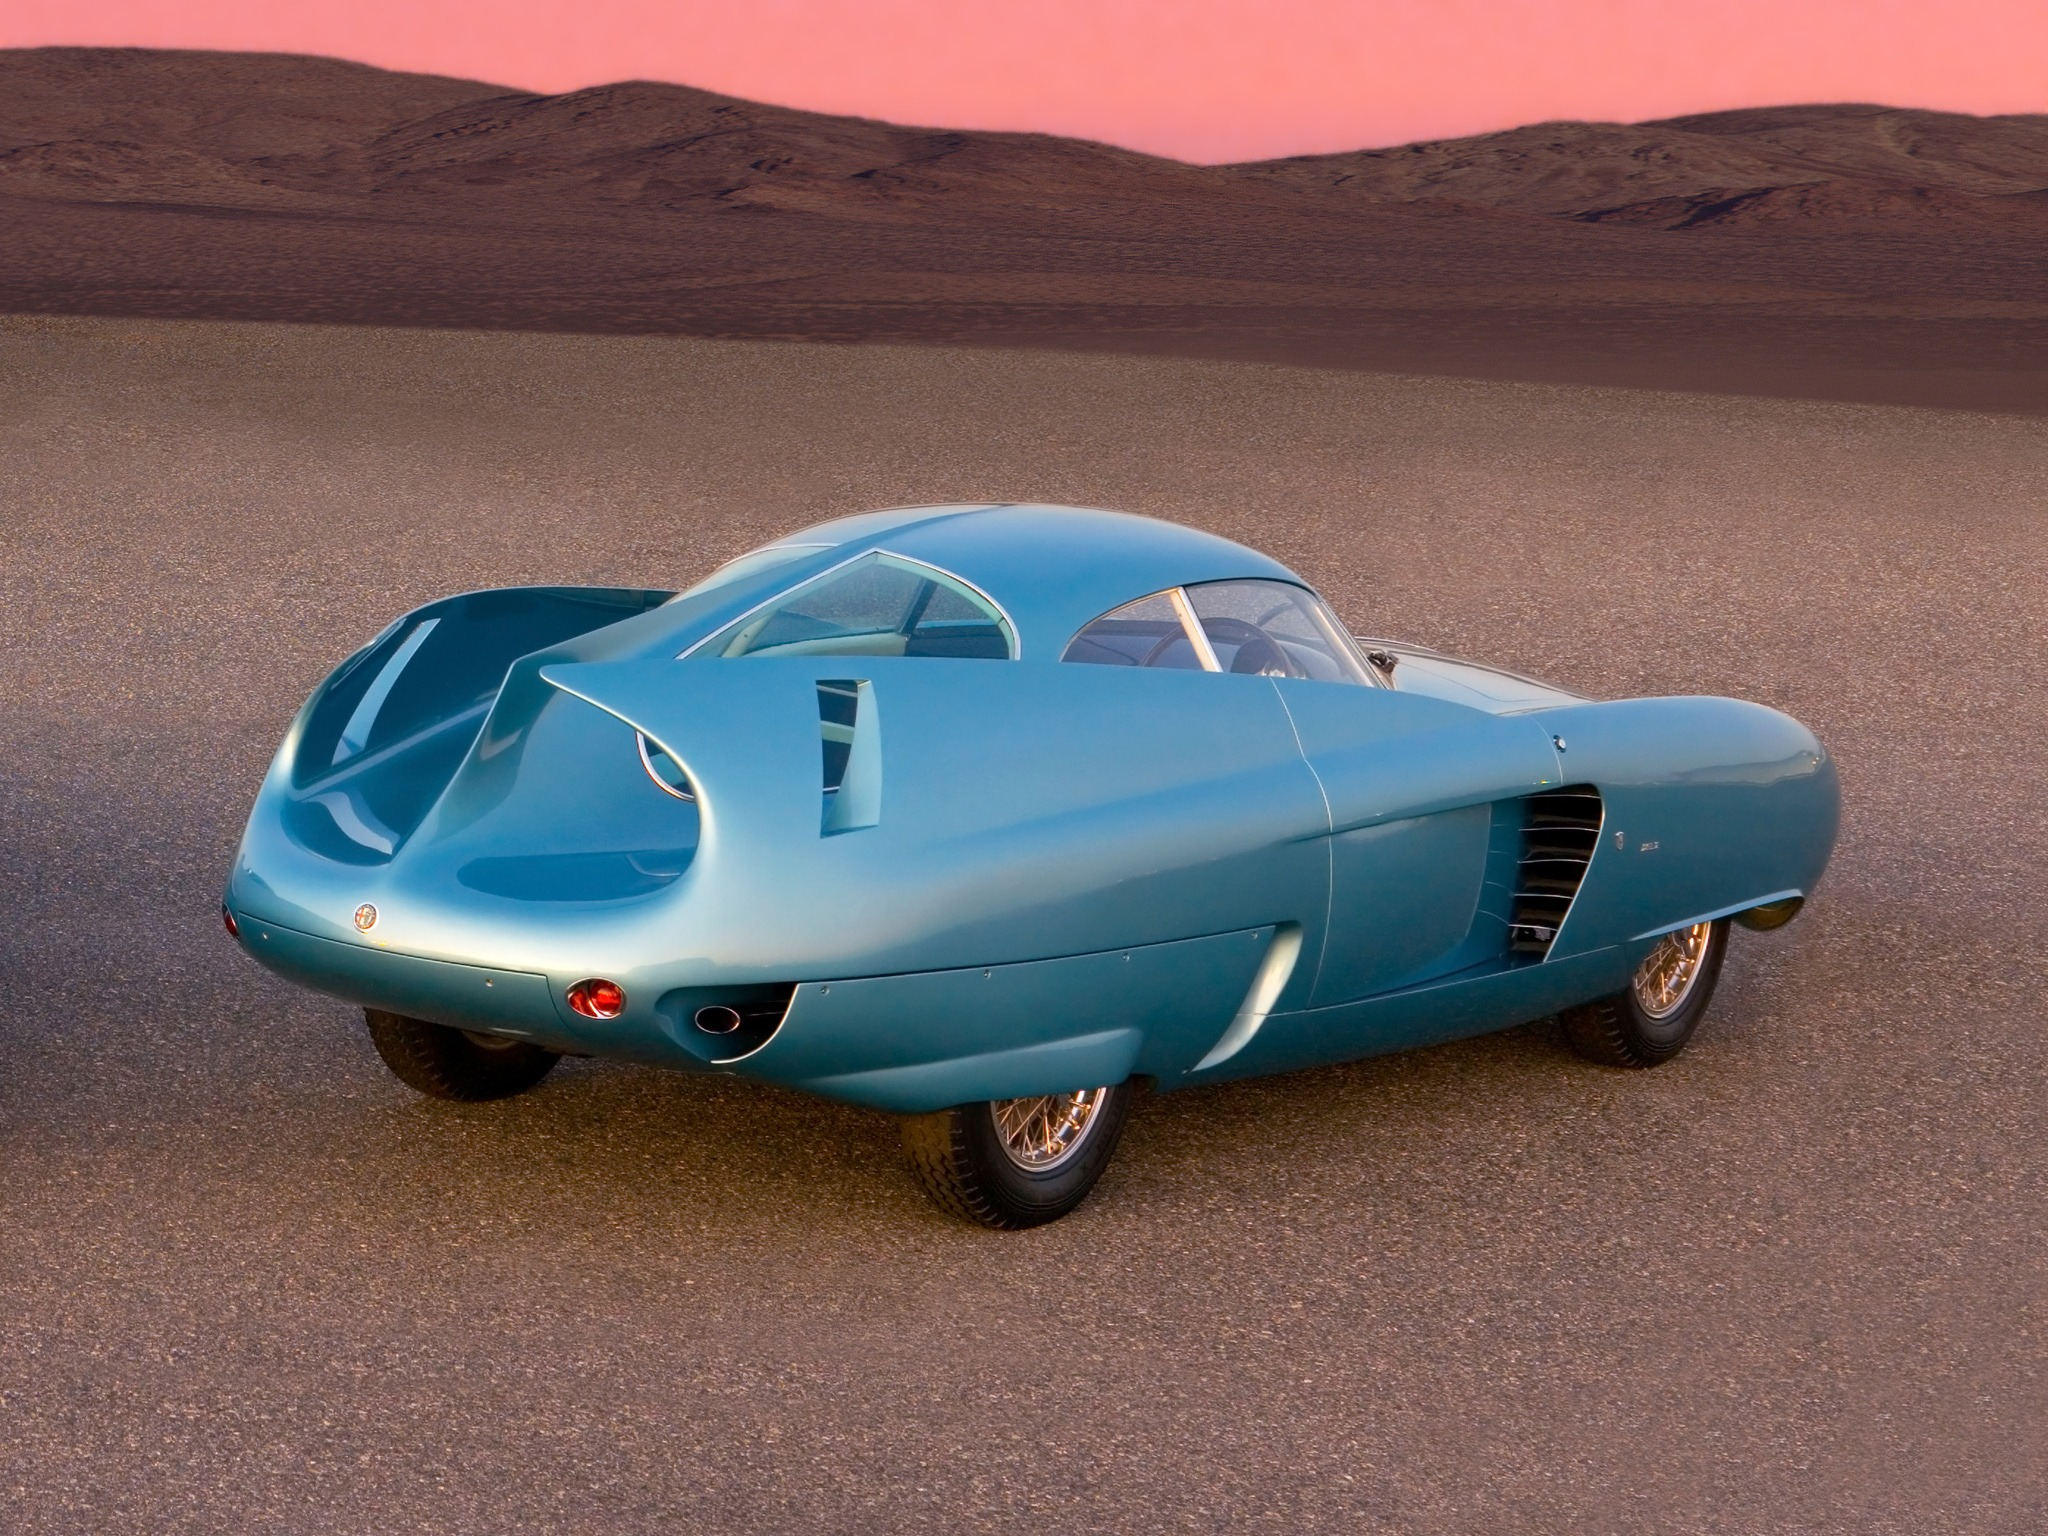 1954 alfa romeo bat 5 concept car.